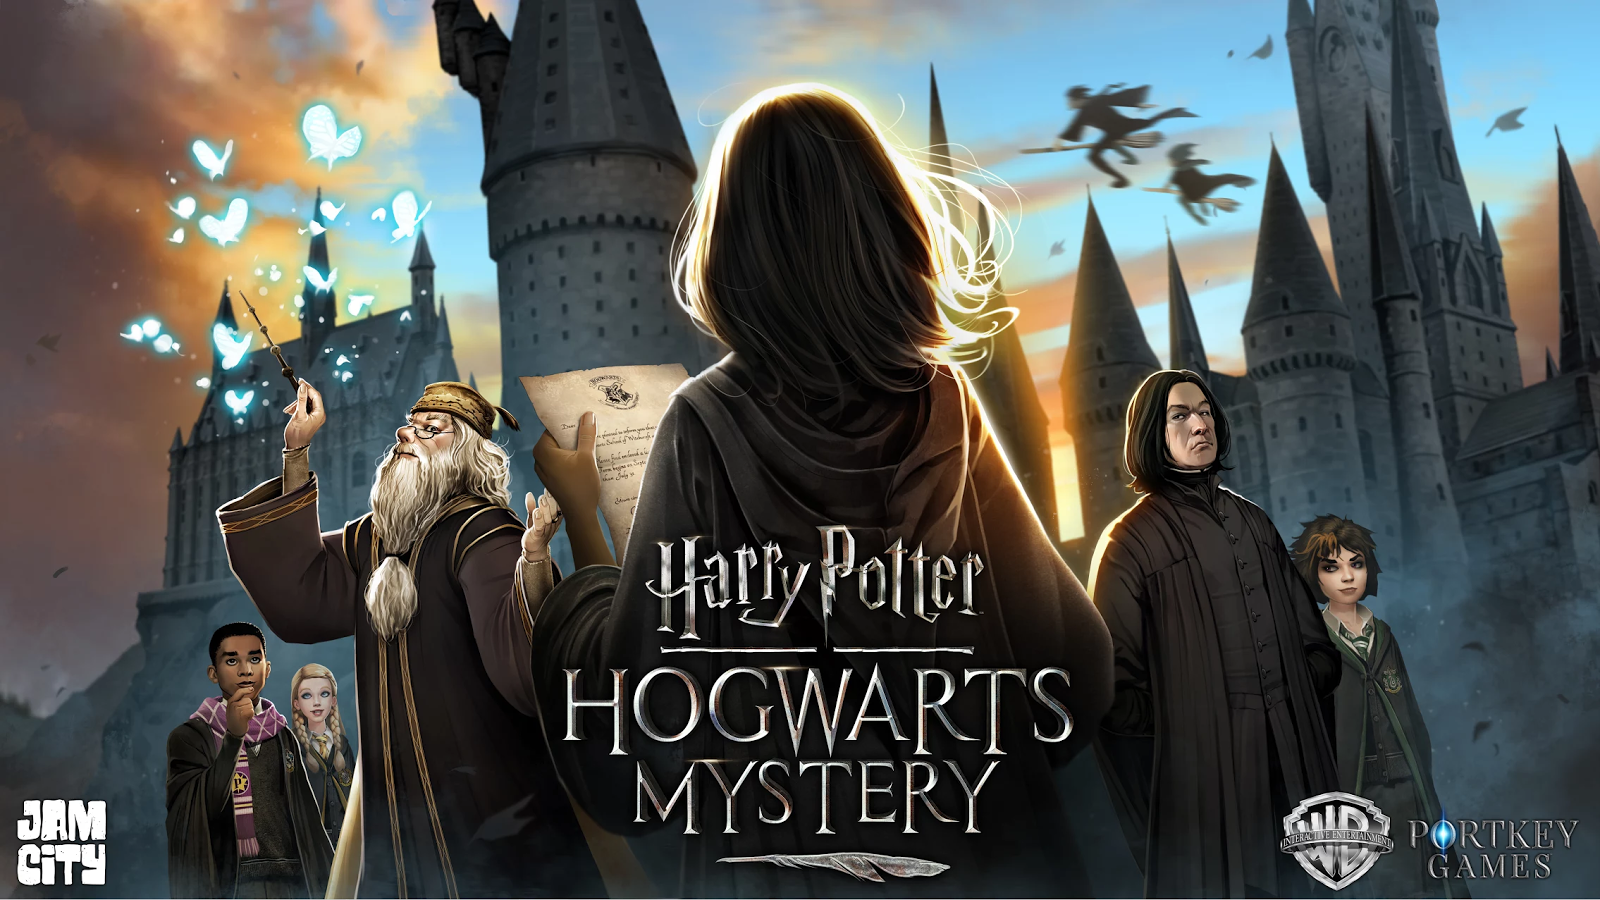 How to Restart 'Harry Potter Hogwarts Mystery': Reset Game on iOS